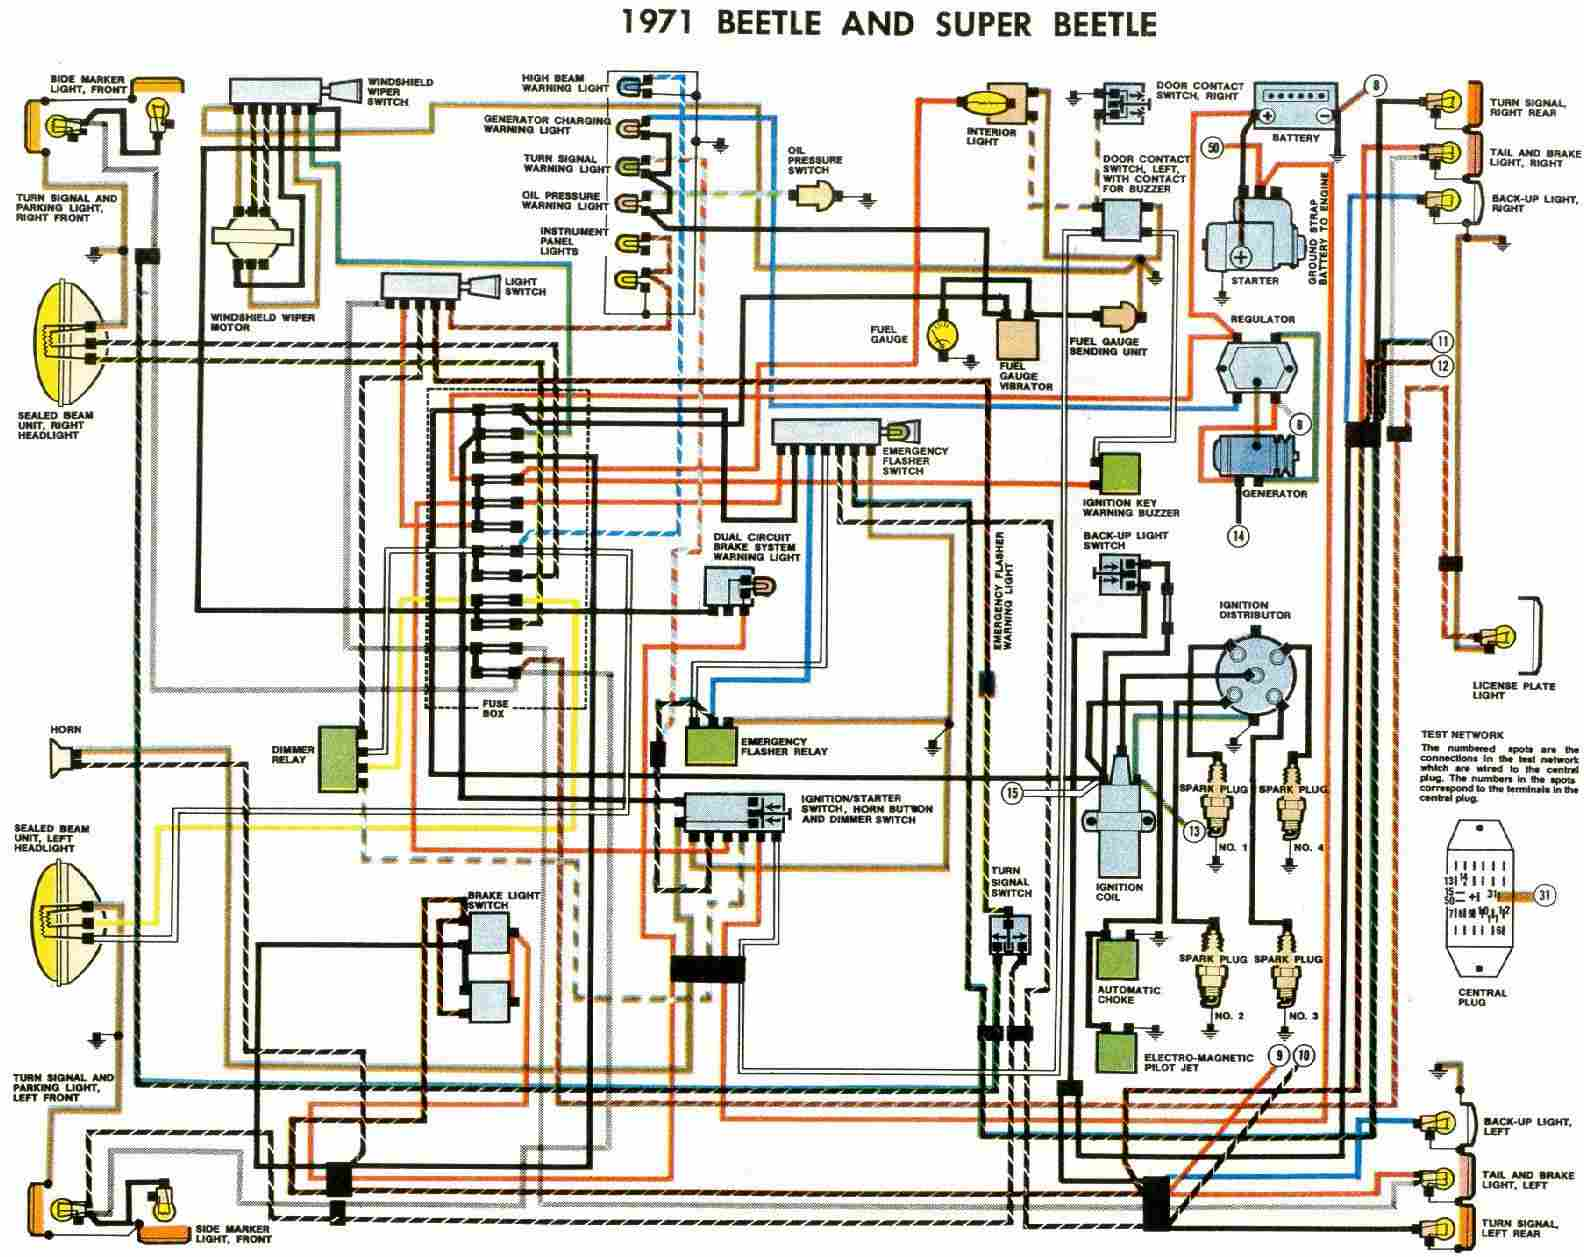 Wiring Diagram Of Schematic 2019 Washing Machine Electrical Vw Beetle And Super 1971